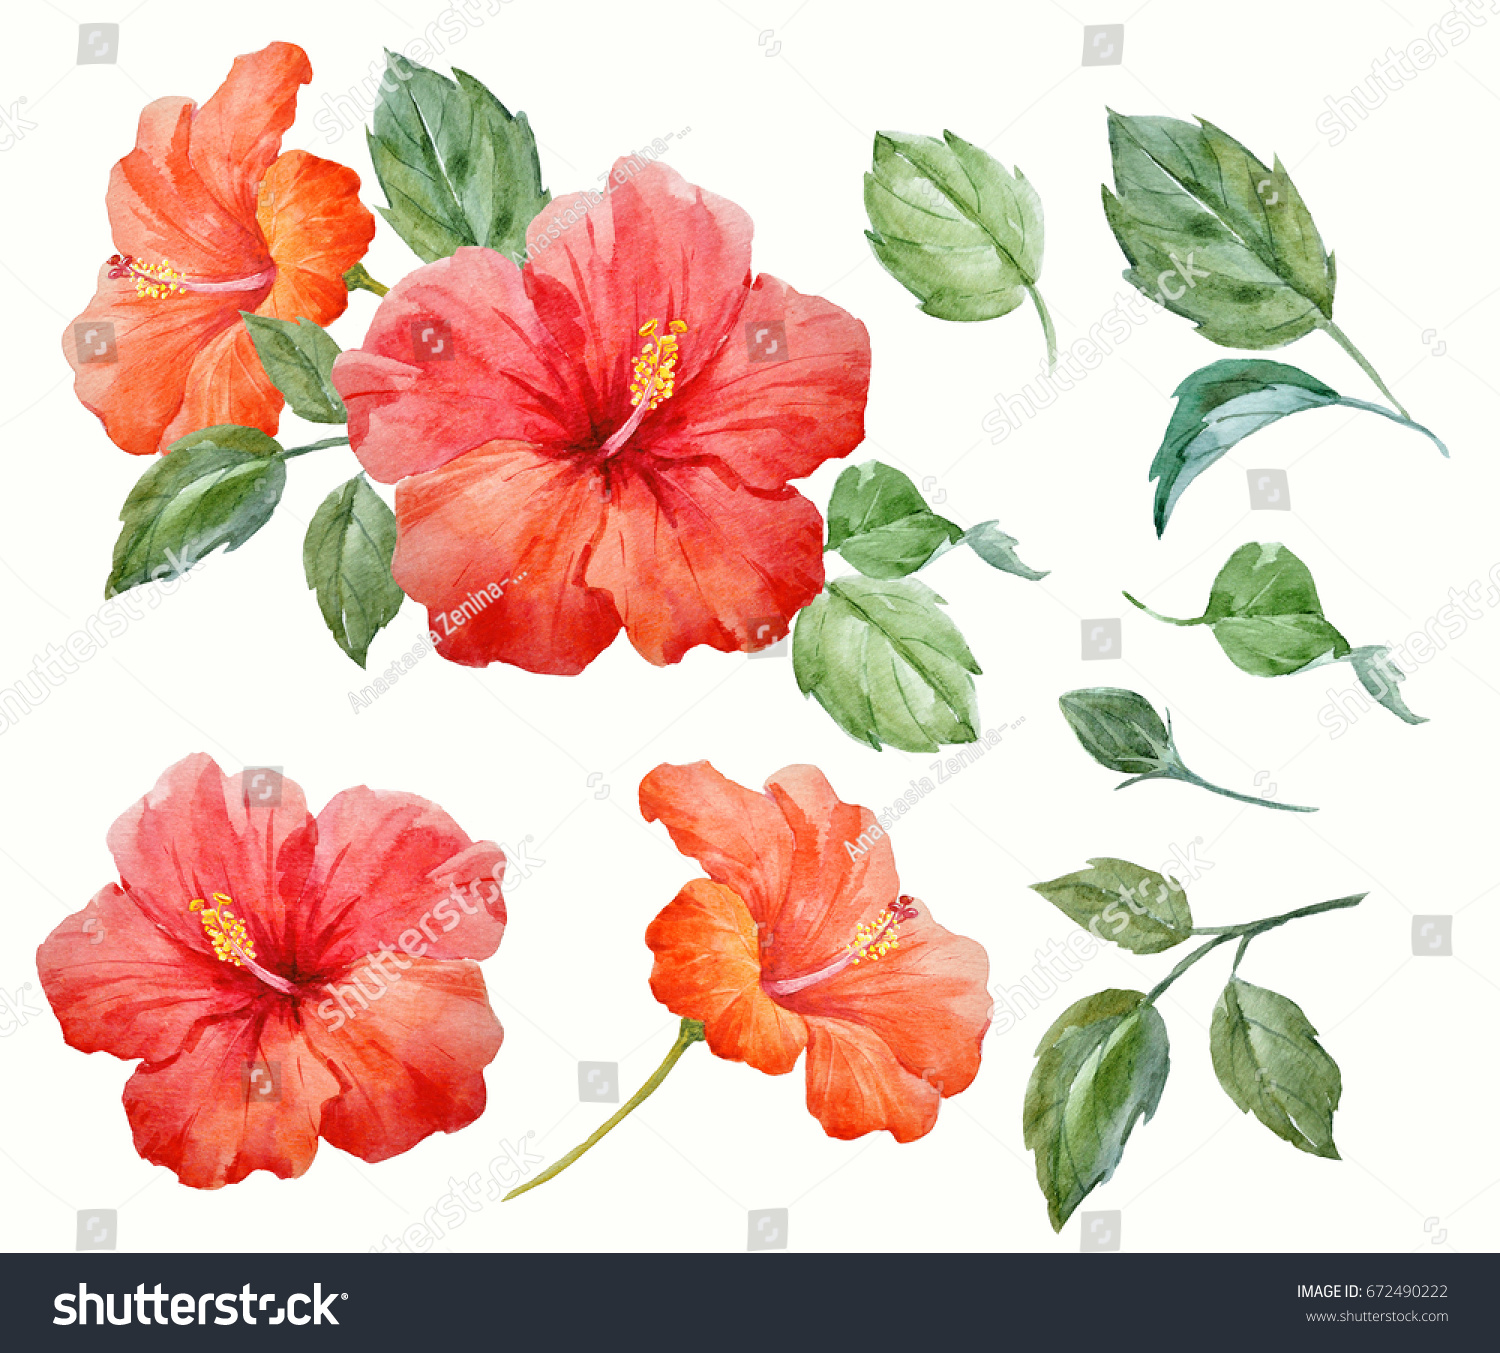 Watercolor tropical flower red orange hibiscus stock illustration watercolor tropical flower red and orange hibiscus with leaves and bud hawaiian flower composition izmirmasajfo